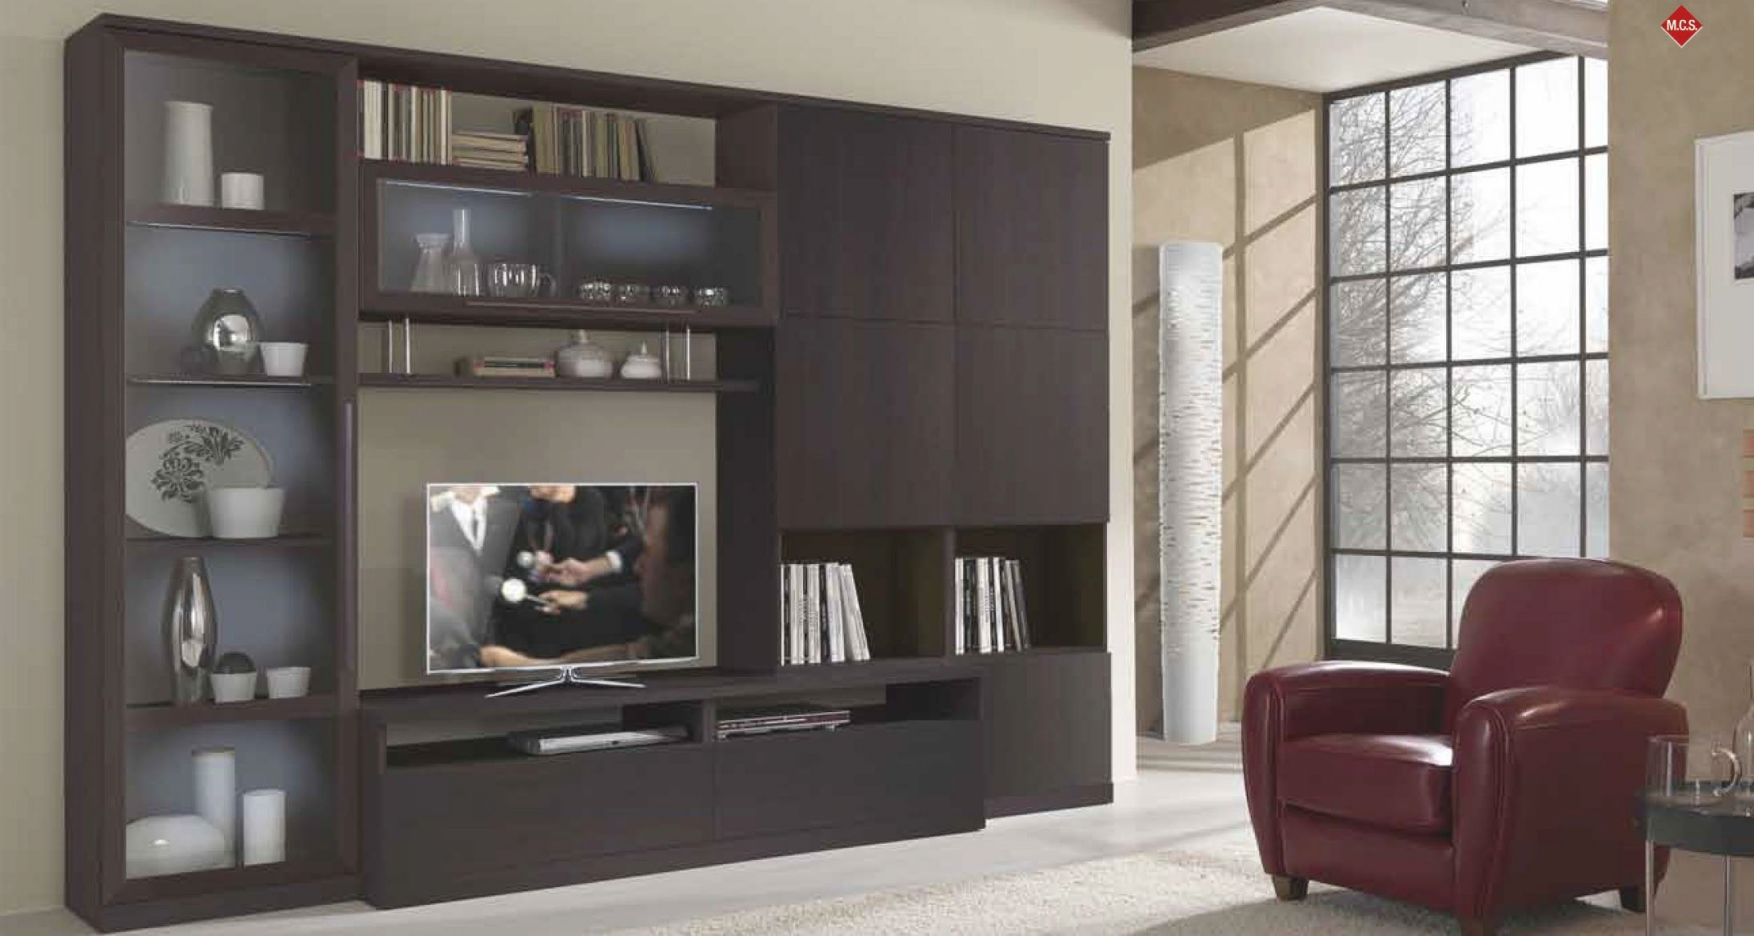 Home Built In Bar And Wall Unit Ideas | Magnificent Living with regard to Stylish Tv Unit